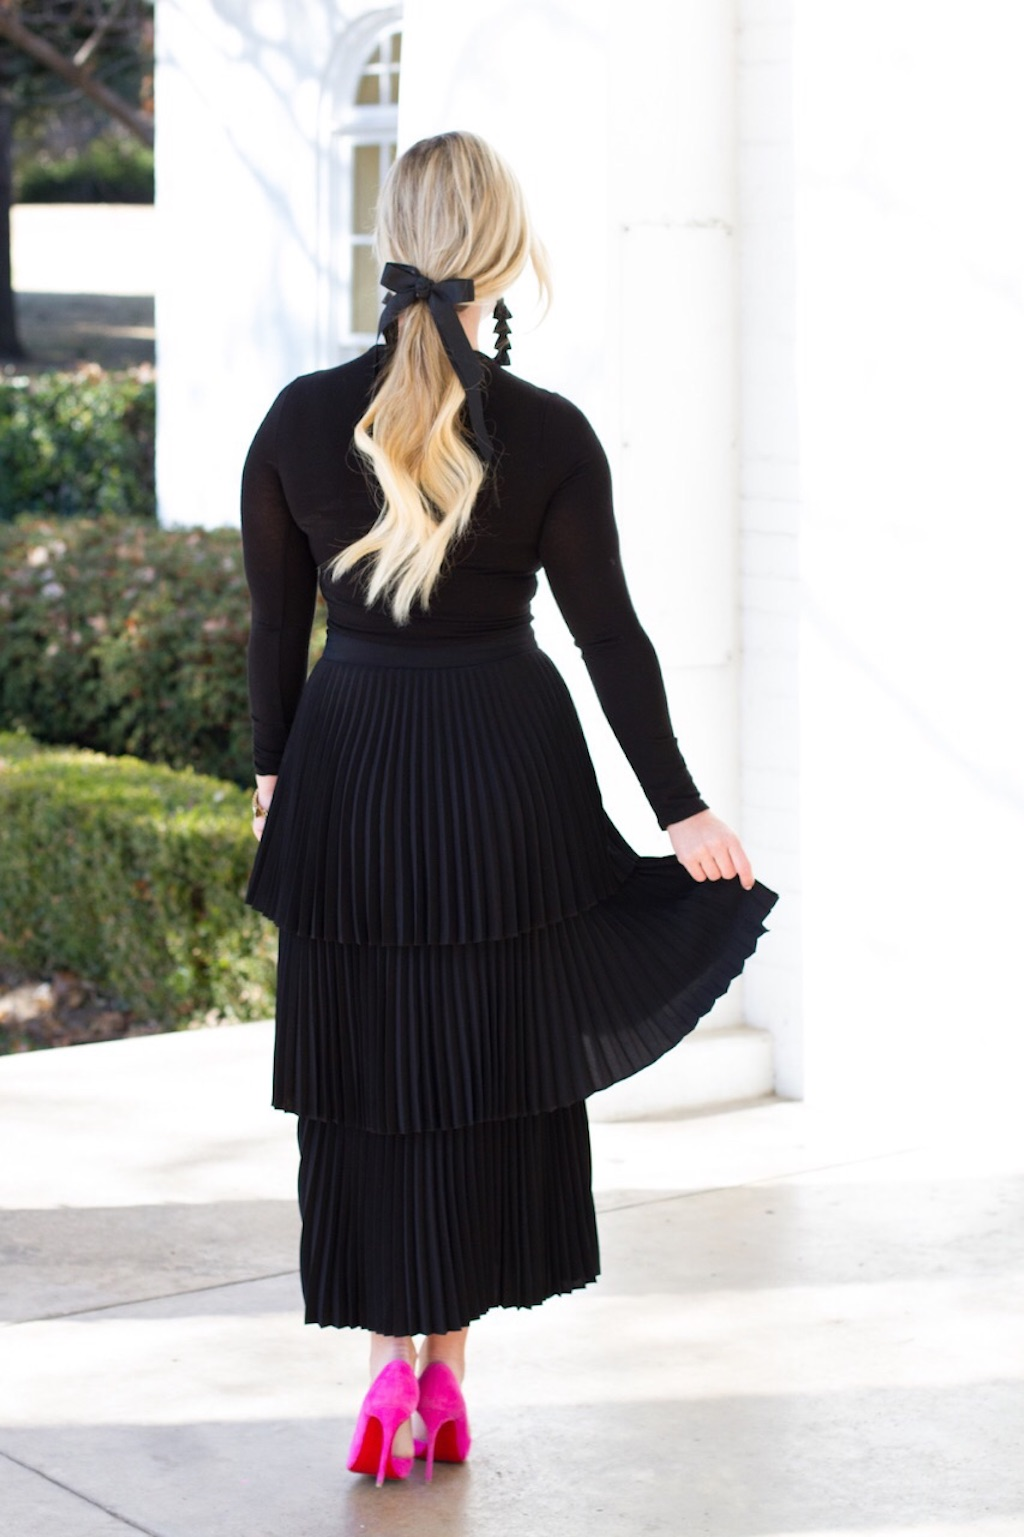 Black Tiered Pleated Skirt | The Darling Petite Diva | Nicole Kirk